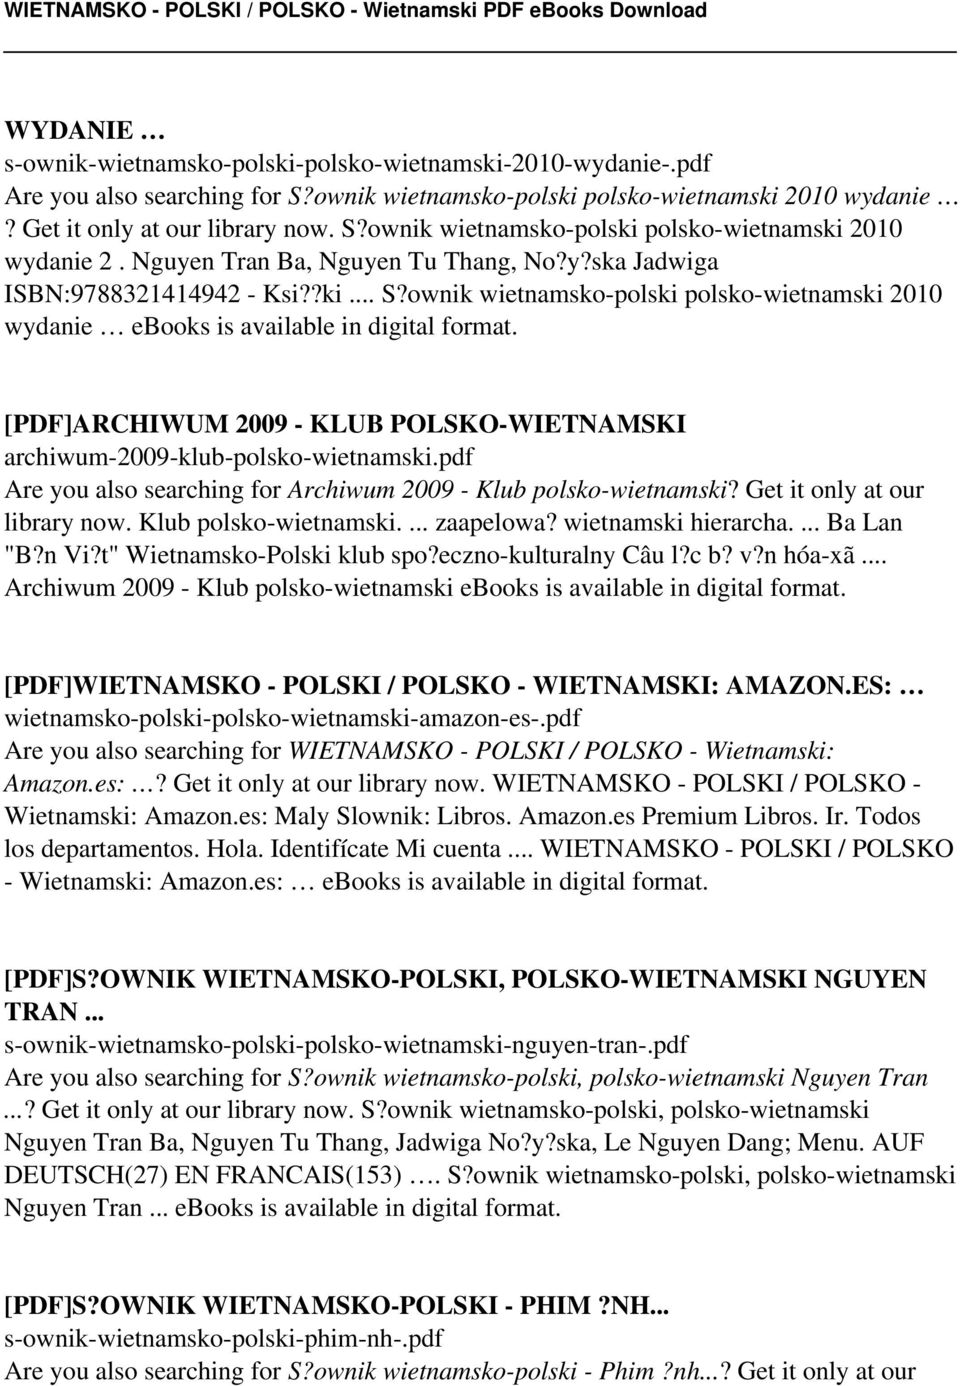 [PDF]ARCHIWUM 2009 - KLUB POLSKO-WIETNAMSKI archiwum-2009-klub-polsko-wietnamski.pdf Are you also searching for Archiwum 2009 - Klub polsko-wietnamski? Get it only at our library now.